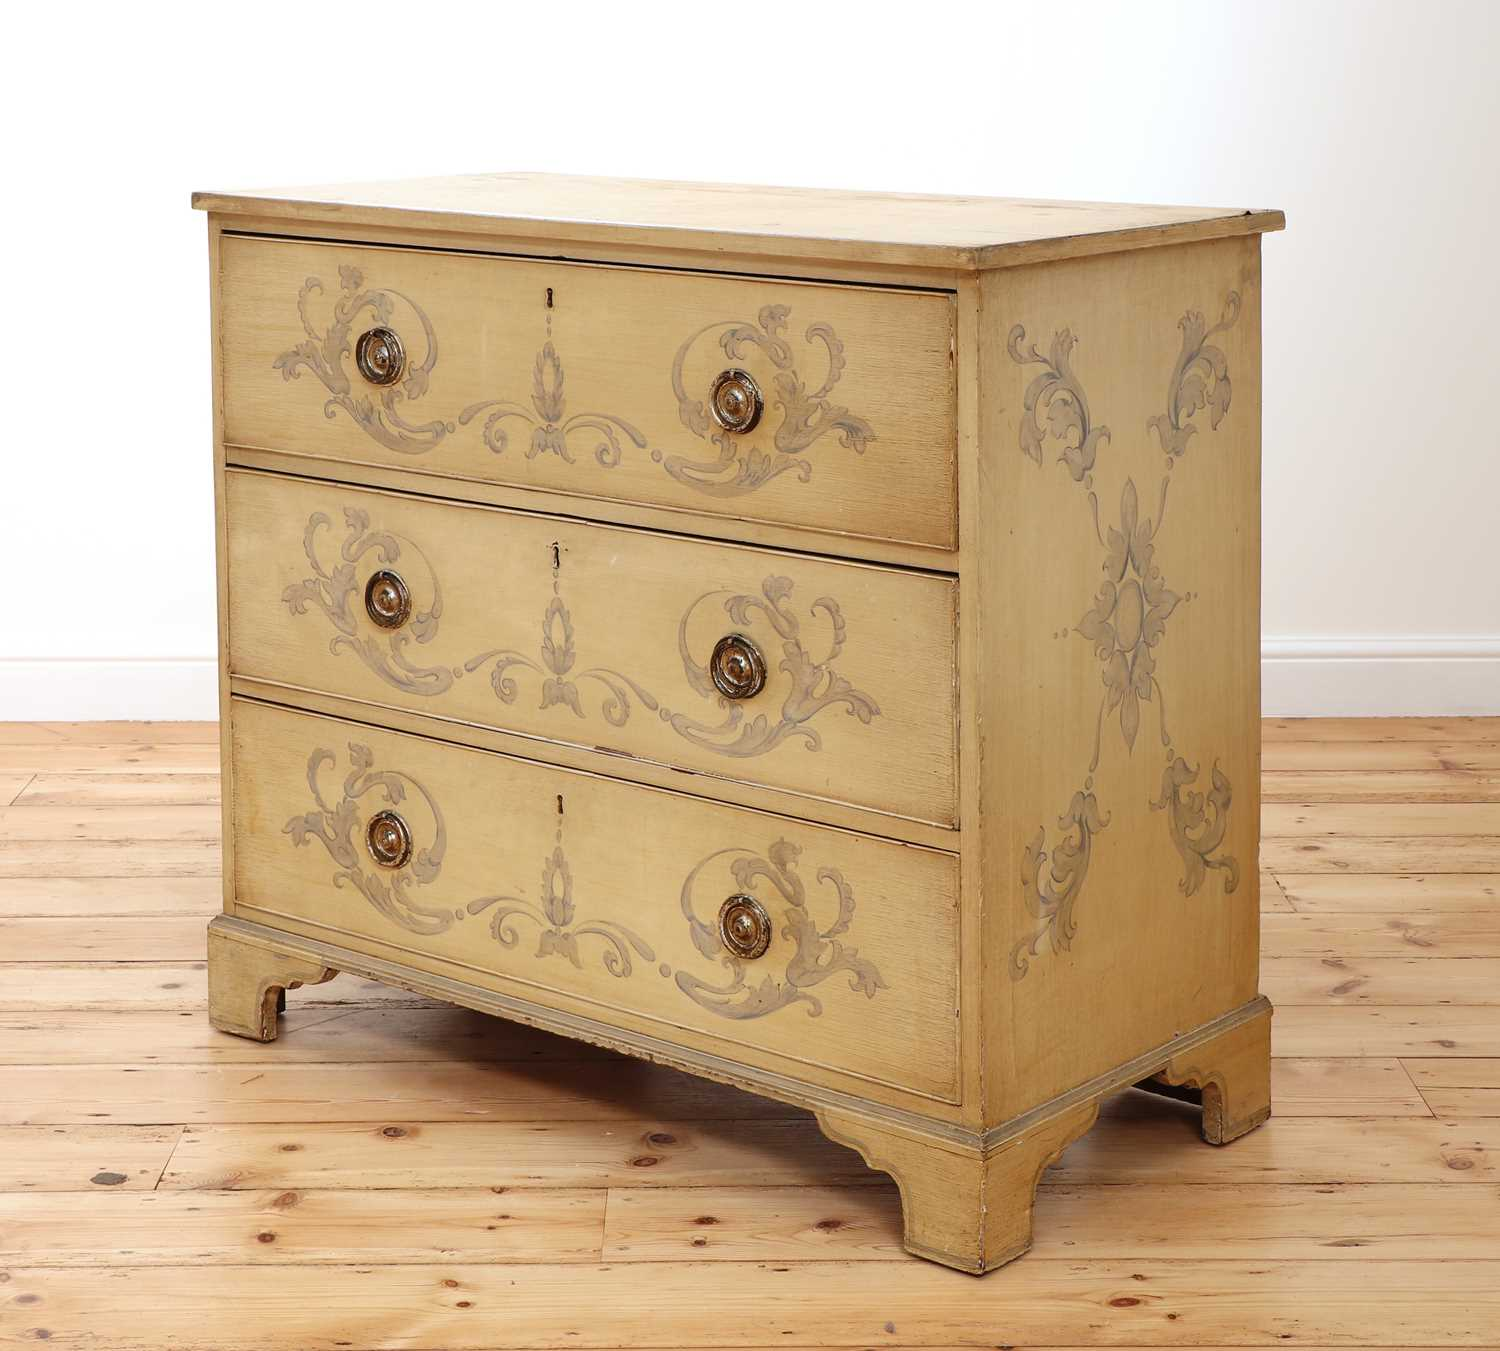 A painted chest of drawers, - Image 2 of 6